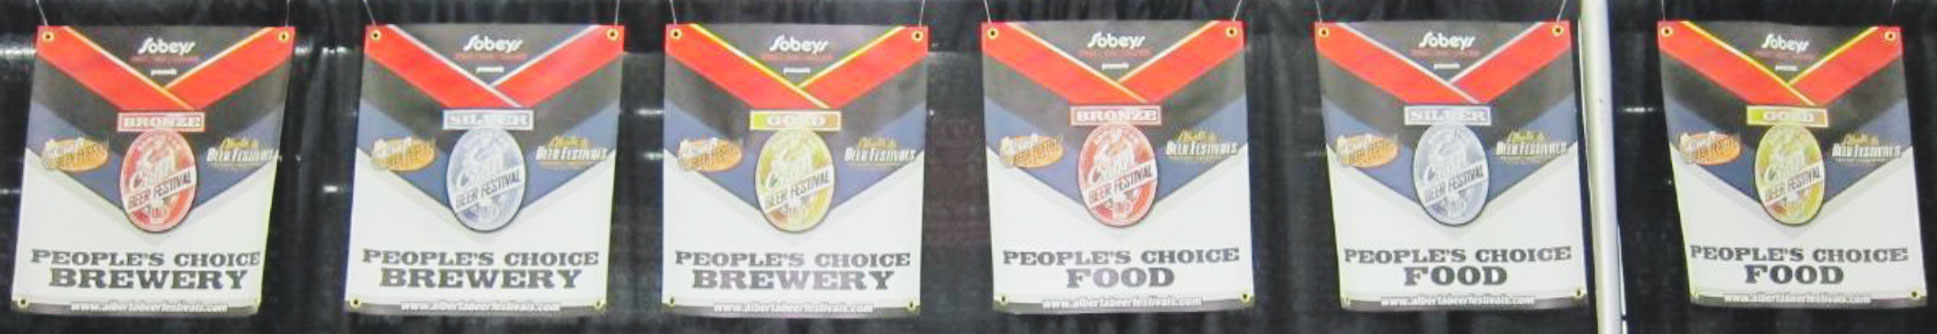 peoples-choice-alberta-beer-festivals